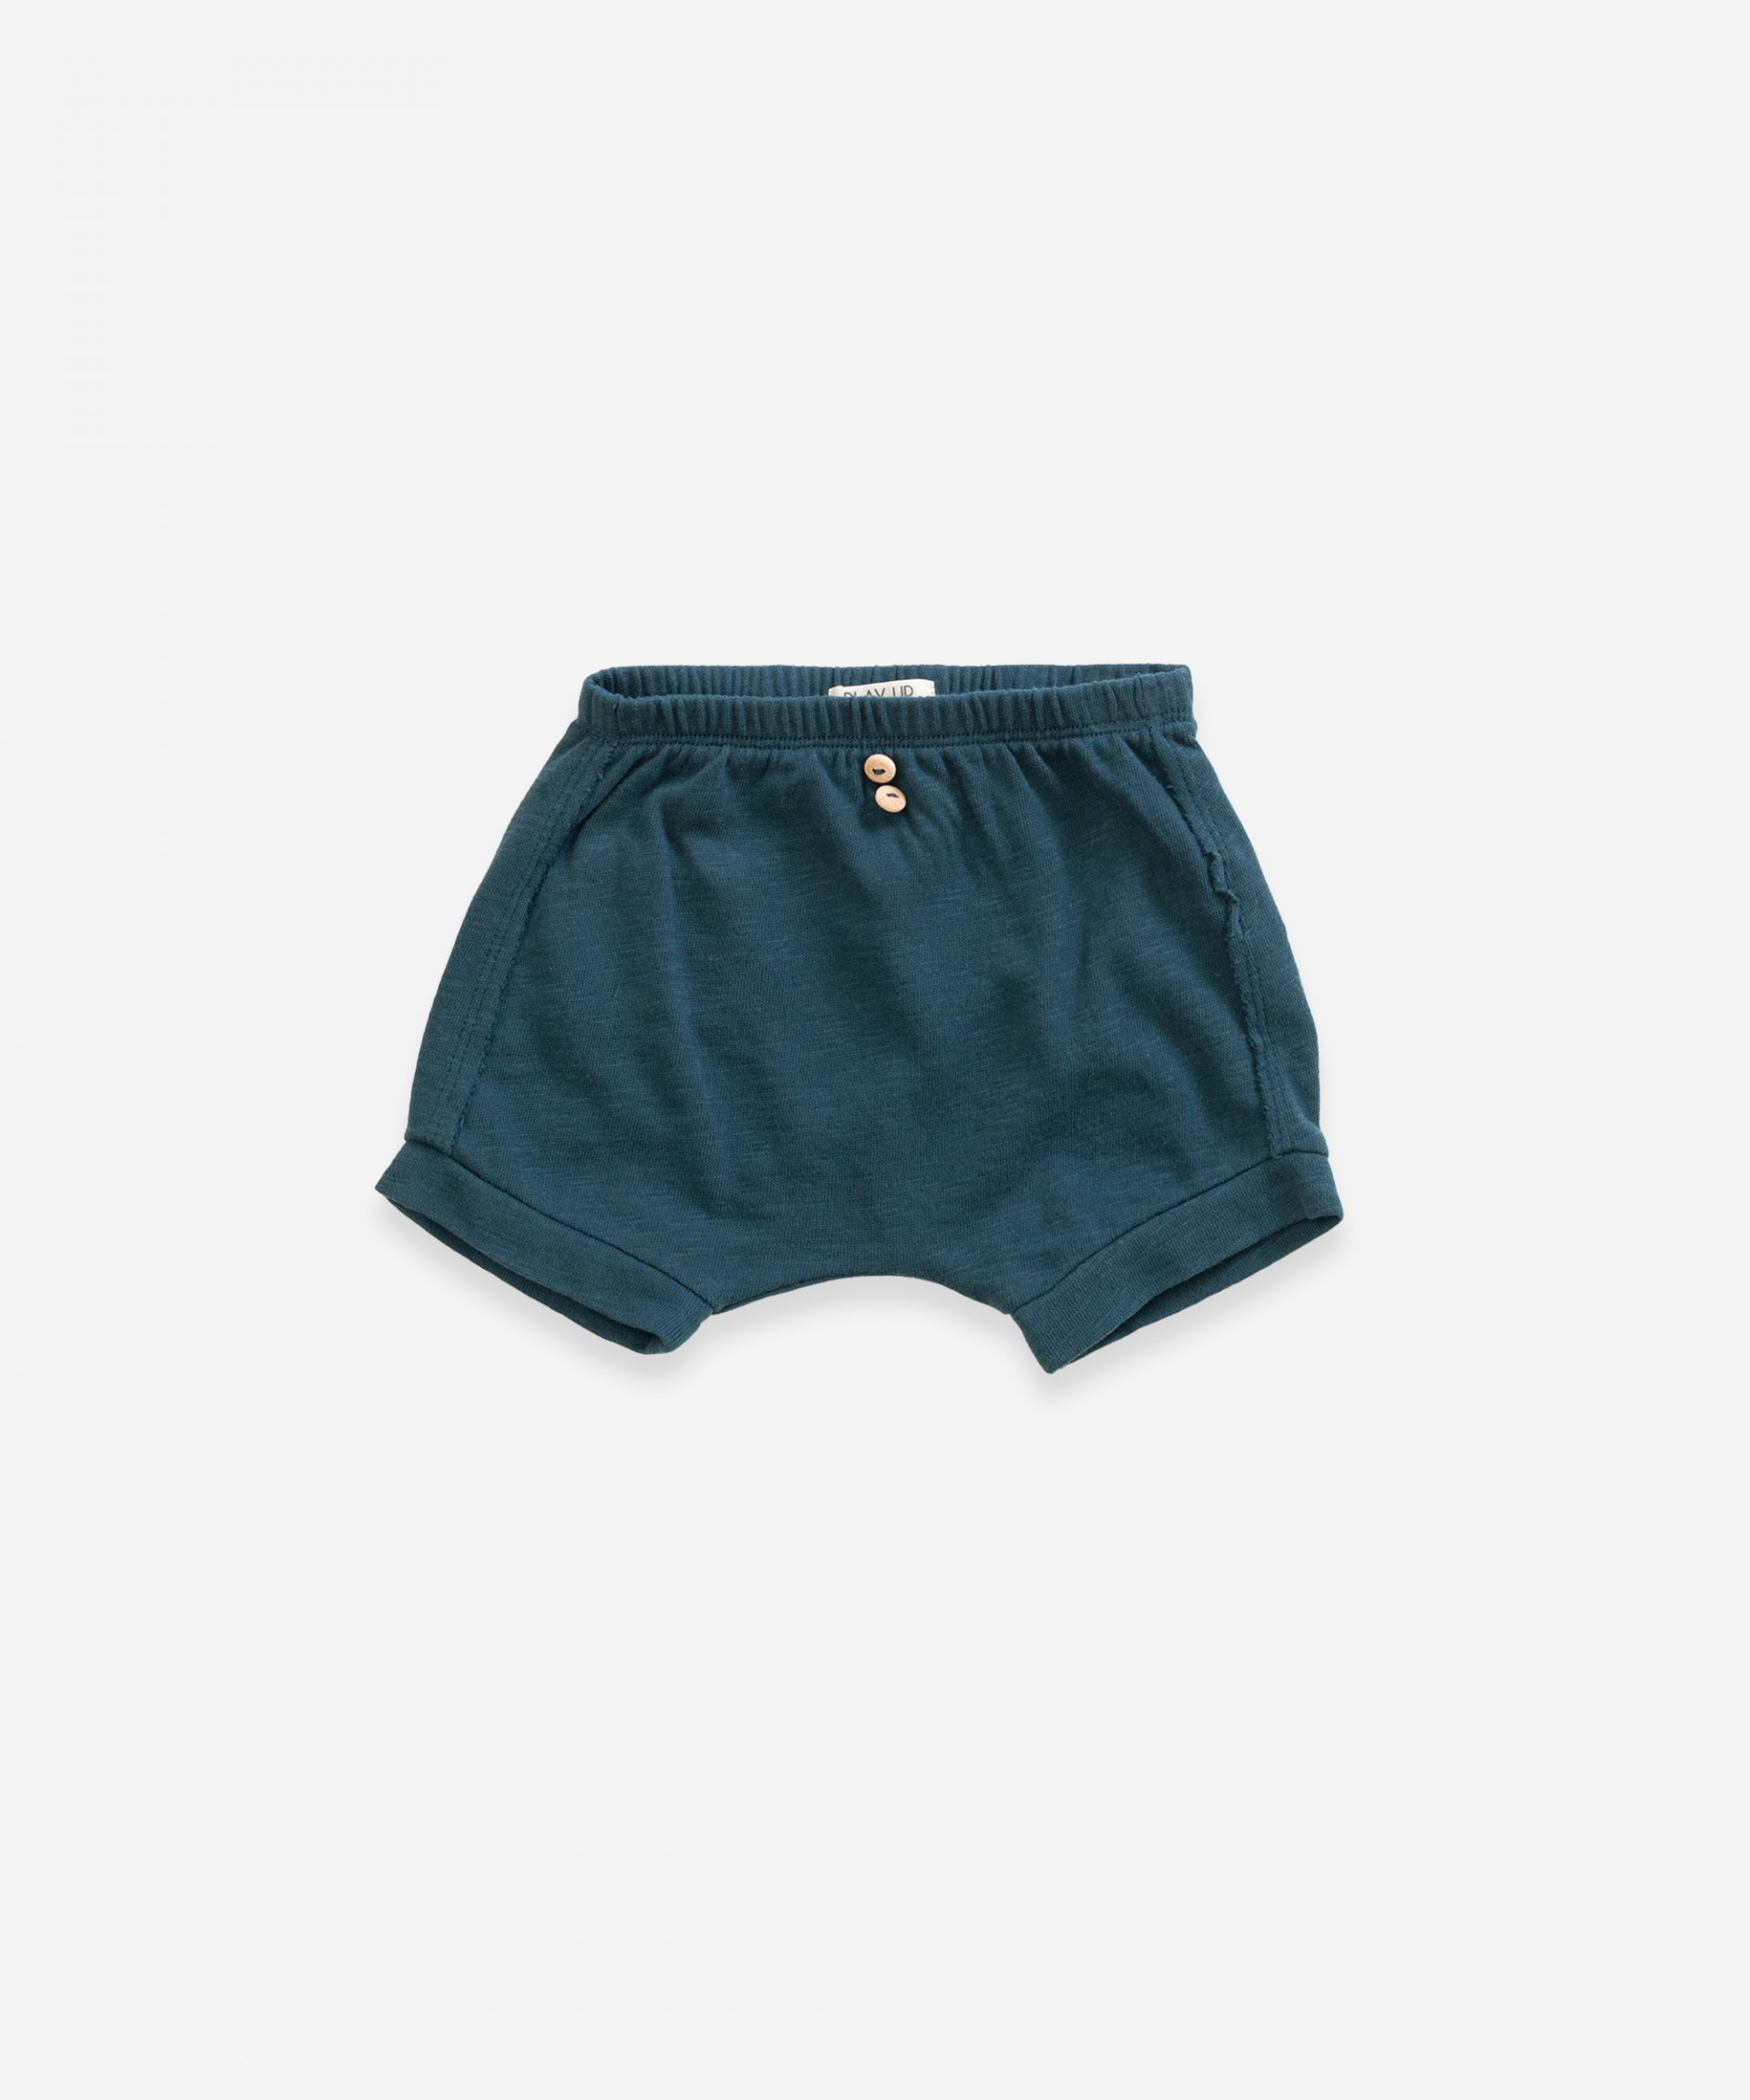 Shorts with pocket in organic cotton | Weaving